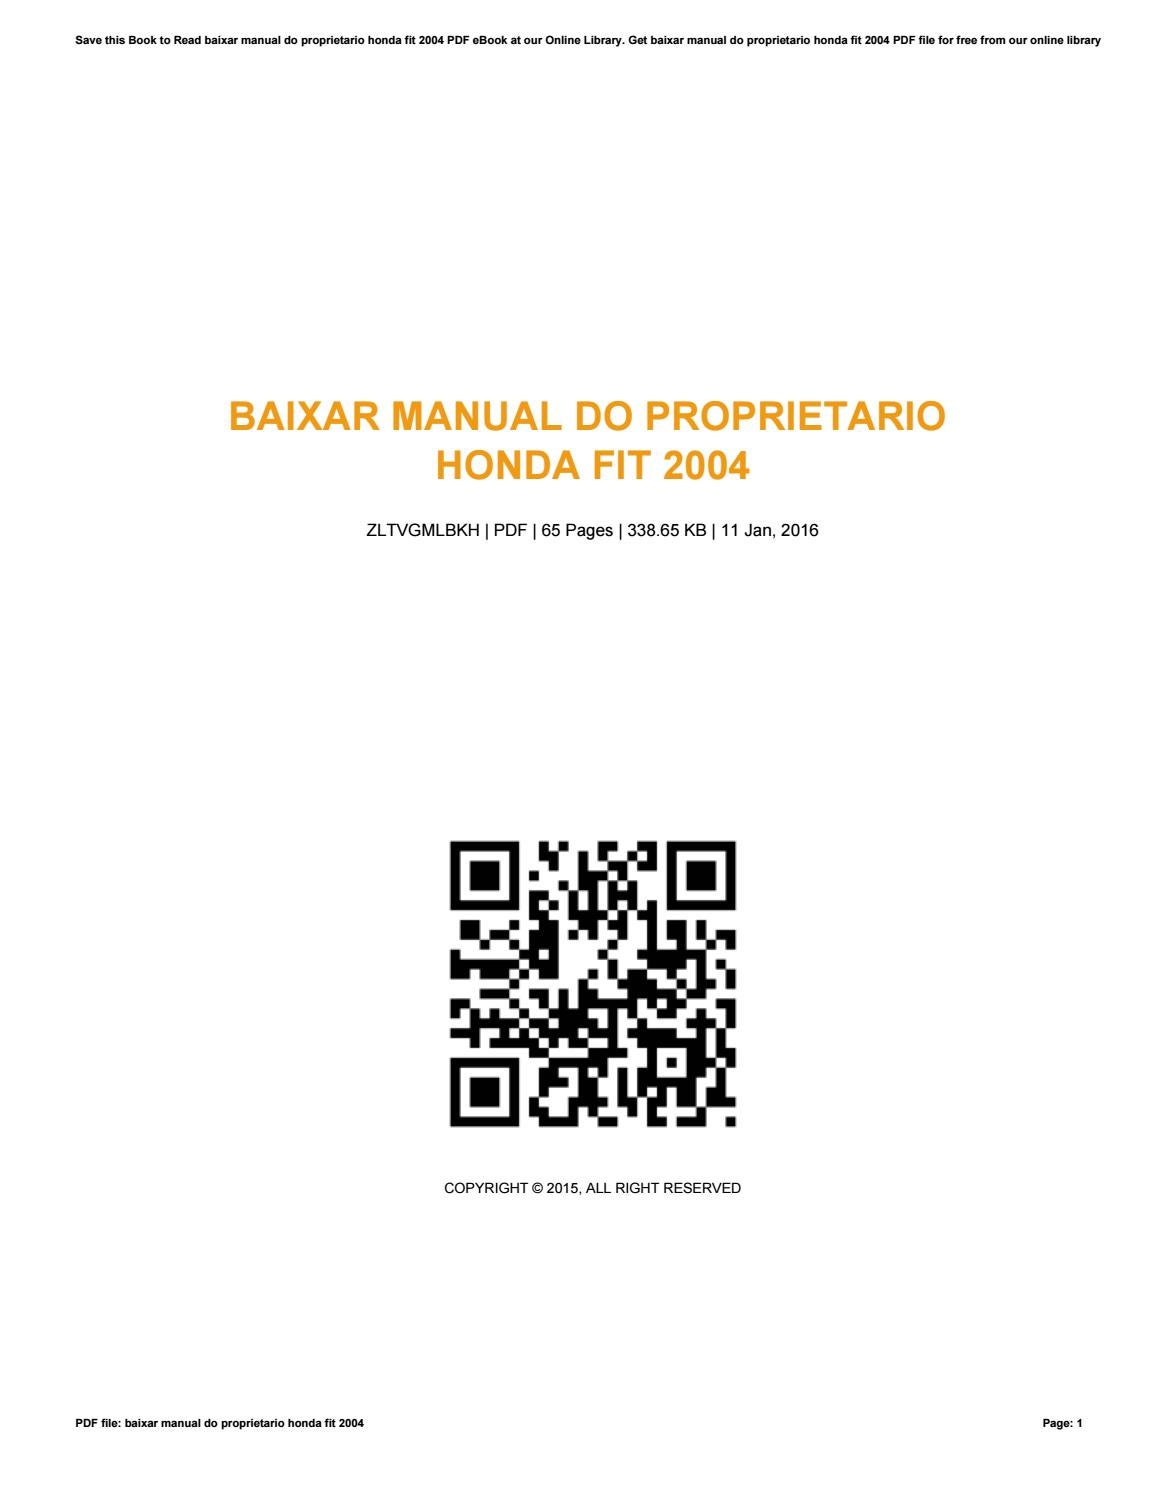 Baixar manual do proprietario honda fit 2004 by